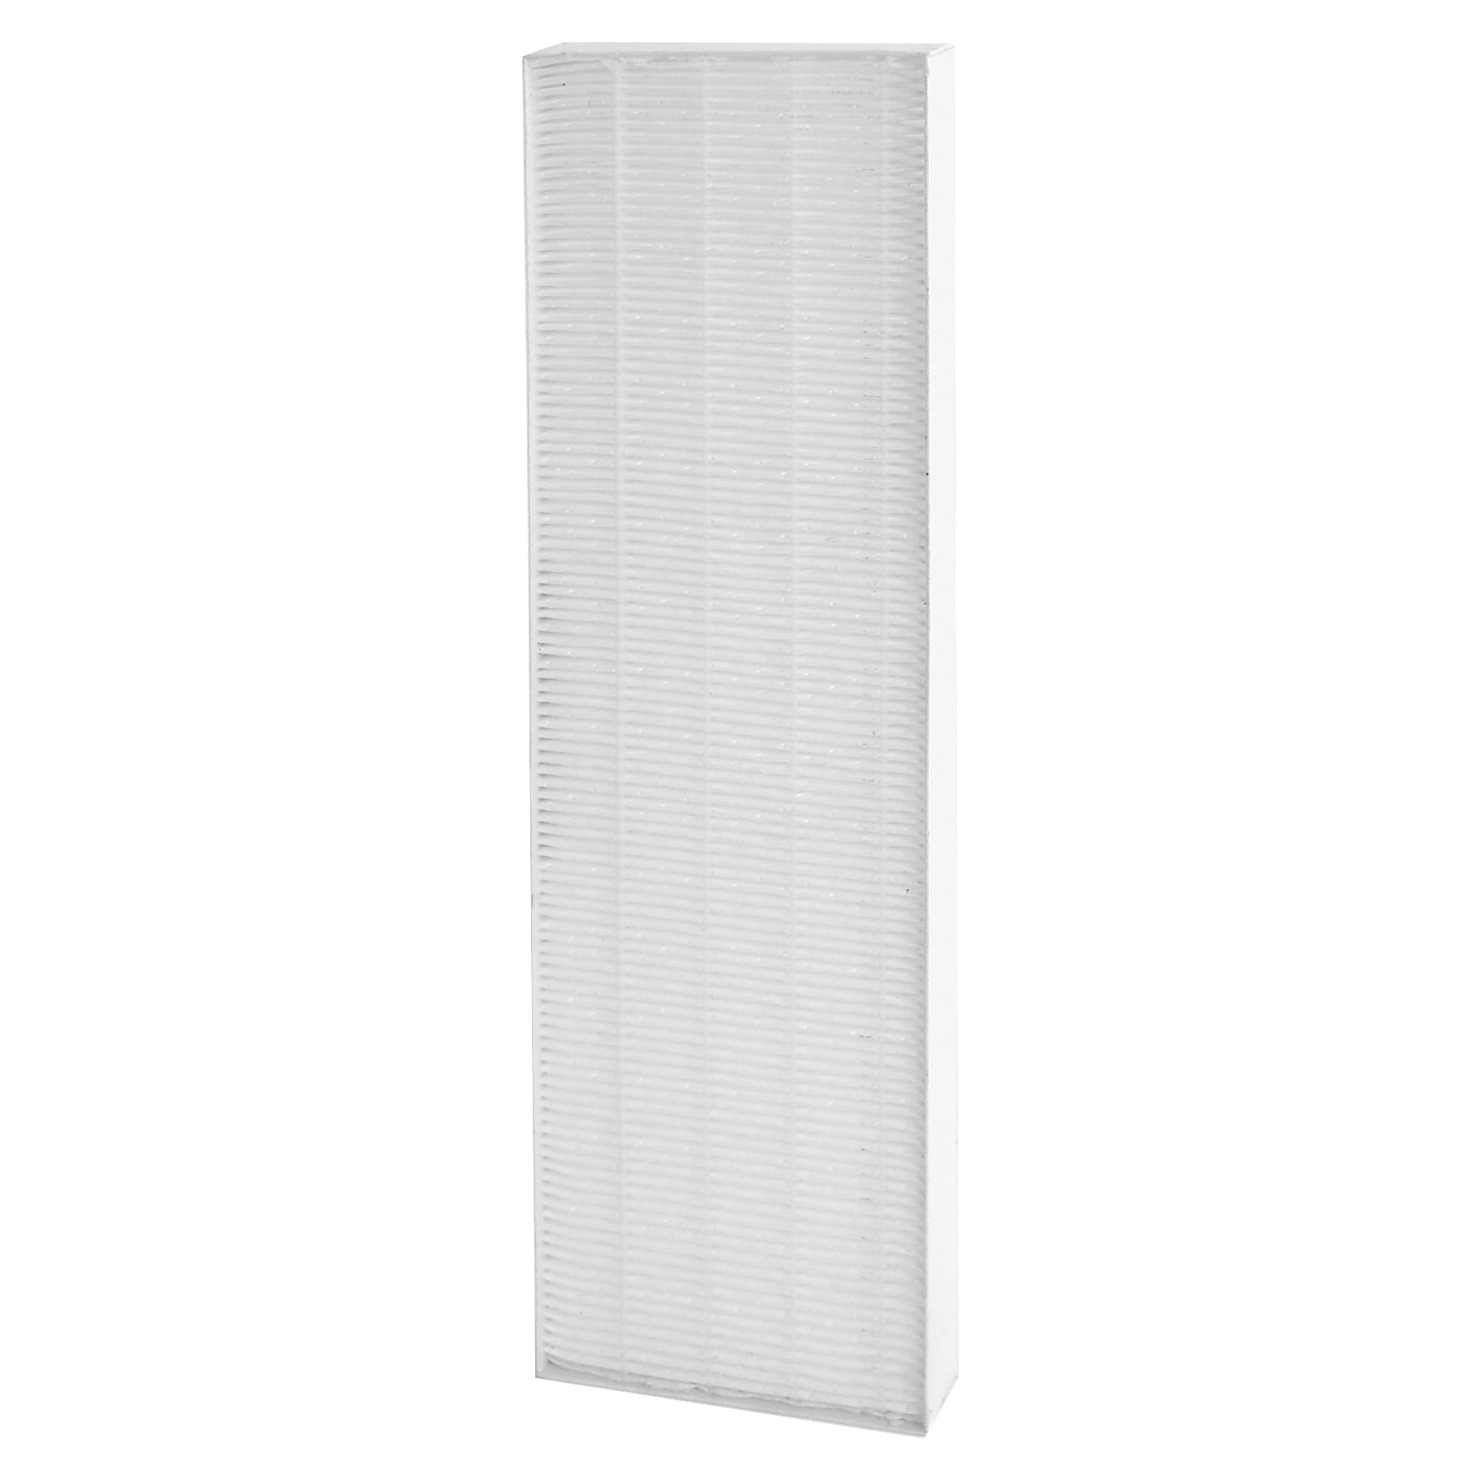 Fellowes Hepa Replacement Filter For Fellowes Purifier With Aerasmart Sensors; 90 Sq-ft-circulation; White - 1467261 - Facilities Management Facility Supplies Machines Appliances Kitchen Appliances 1467261